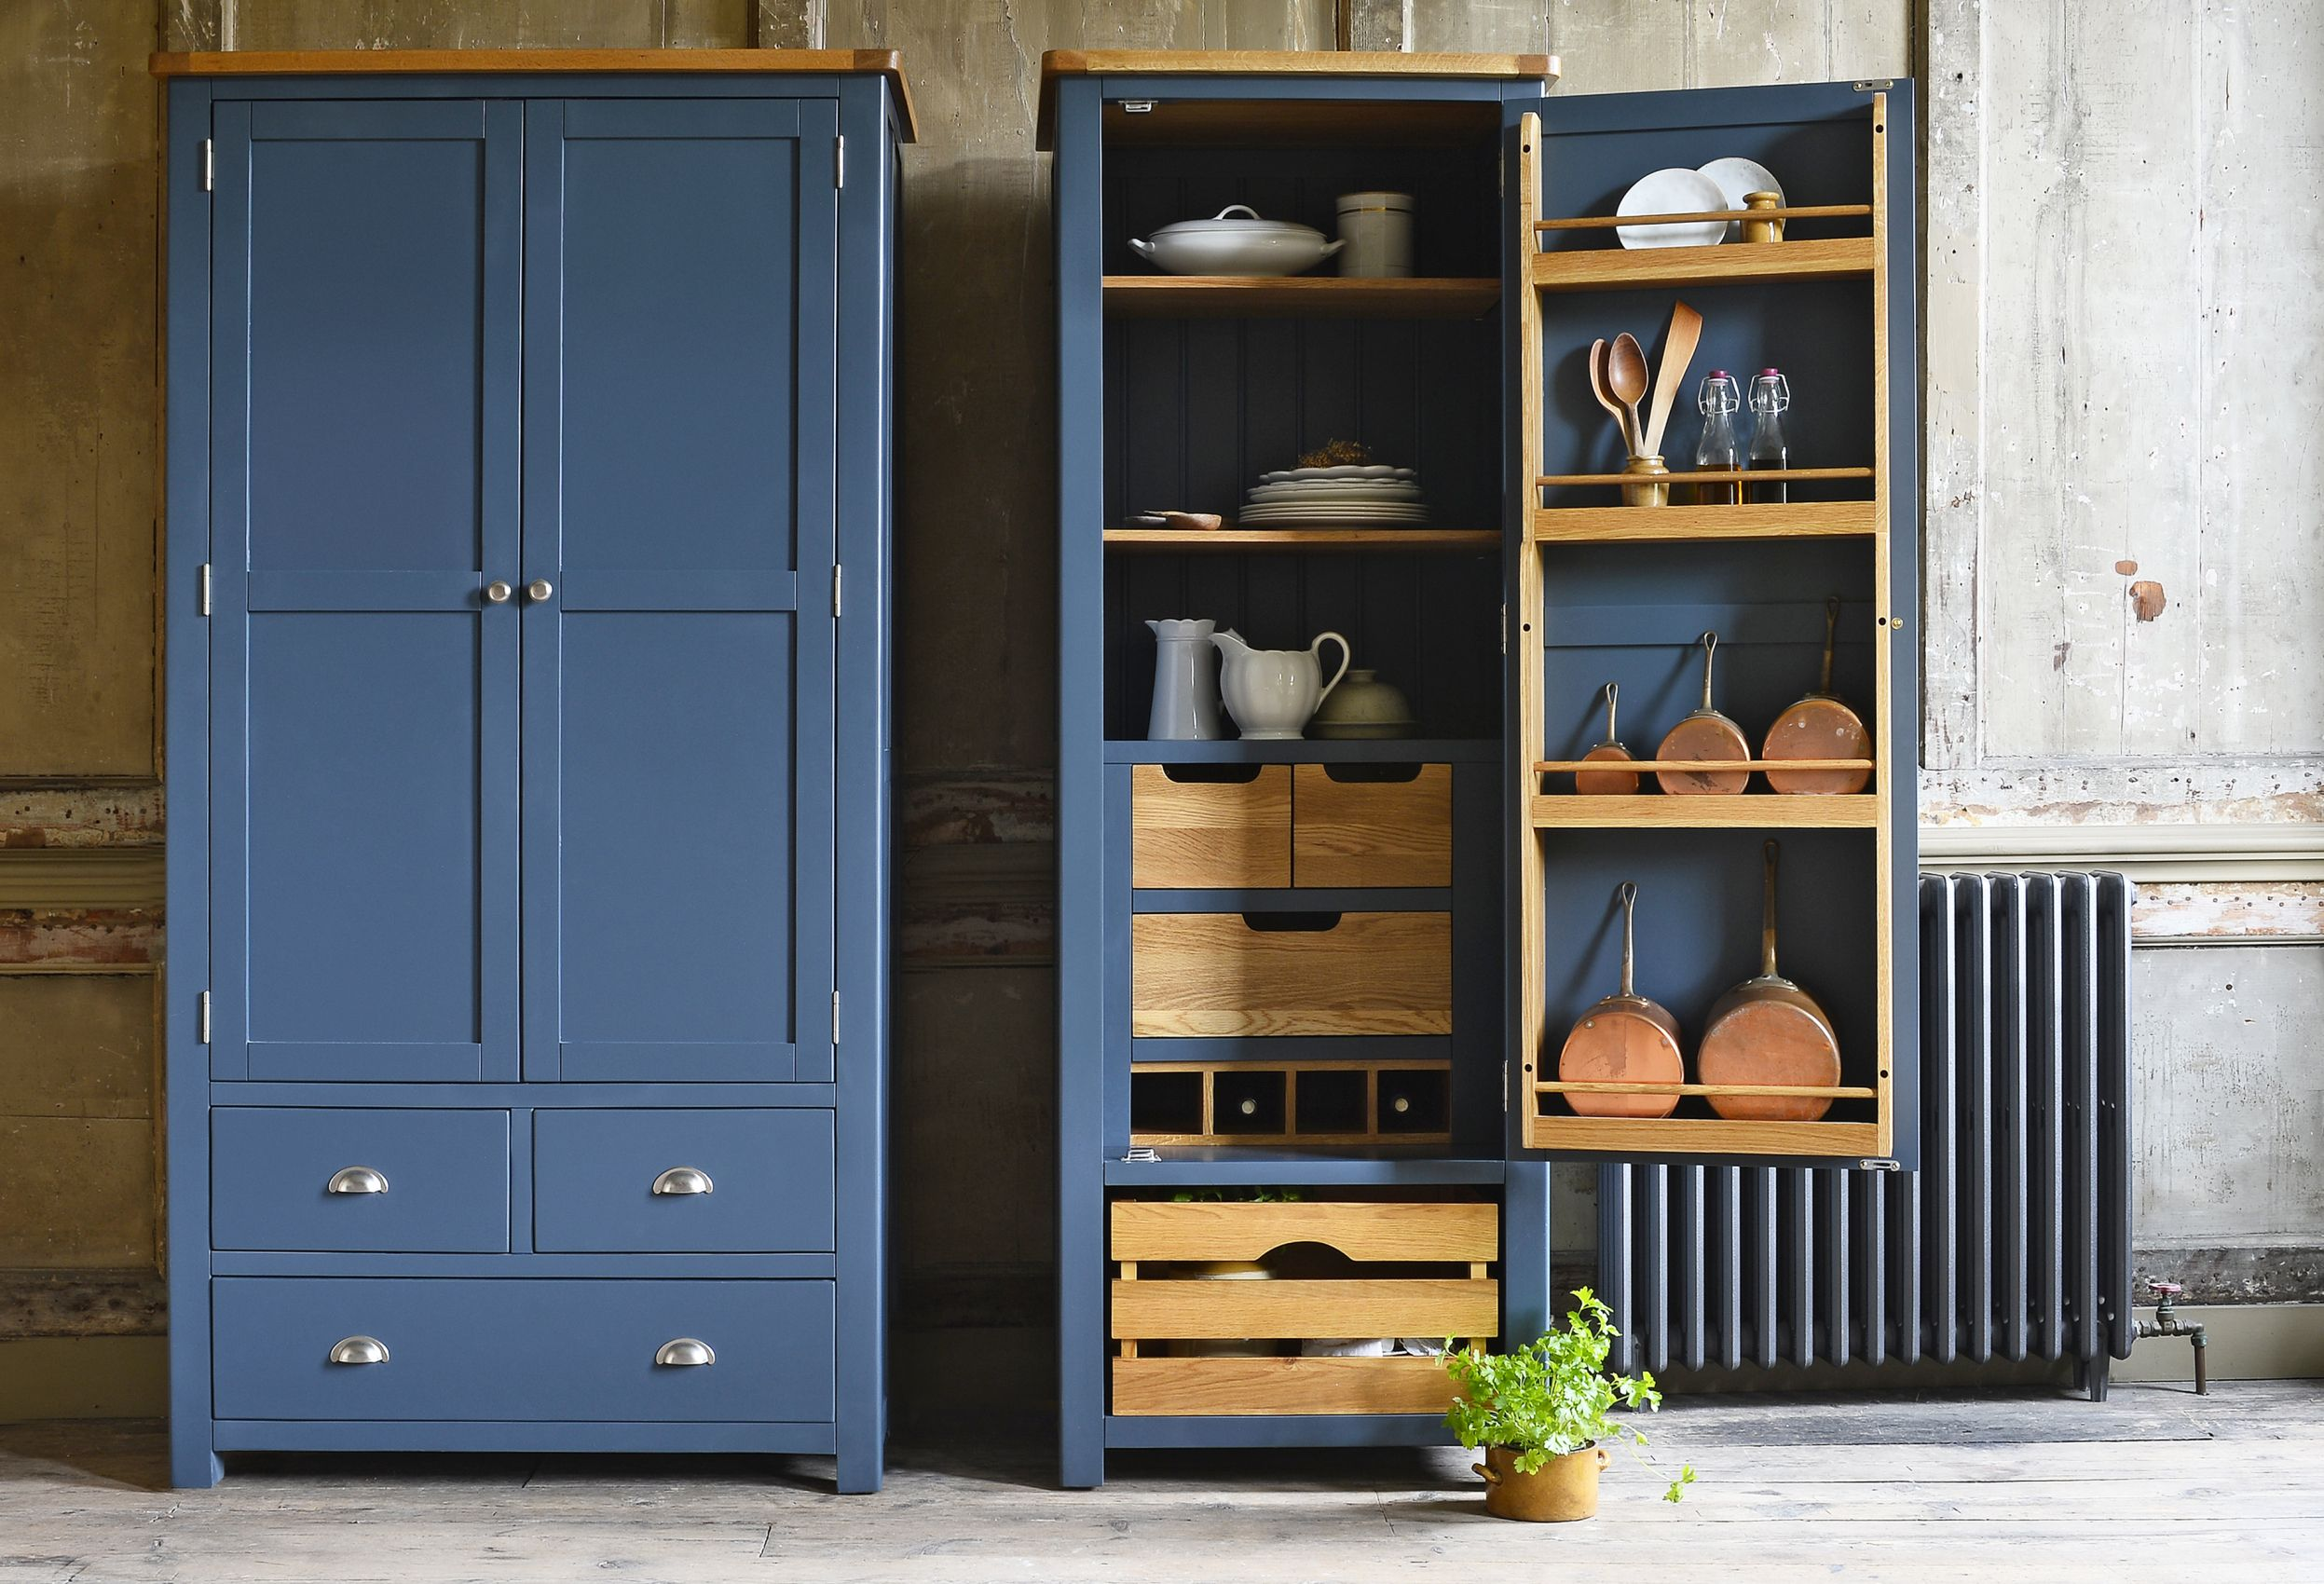 THE 2018 COLOUR TRENDS TO TRY | Kitchen larder, Pantone color and ...